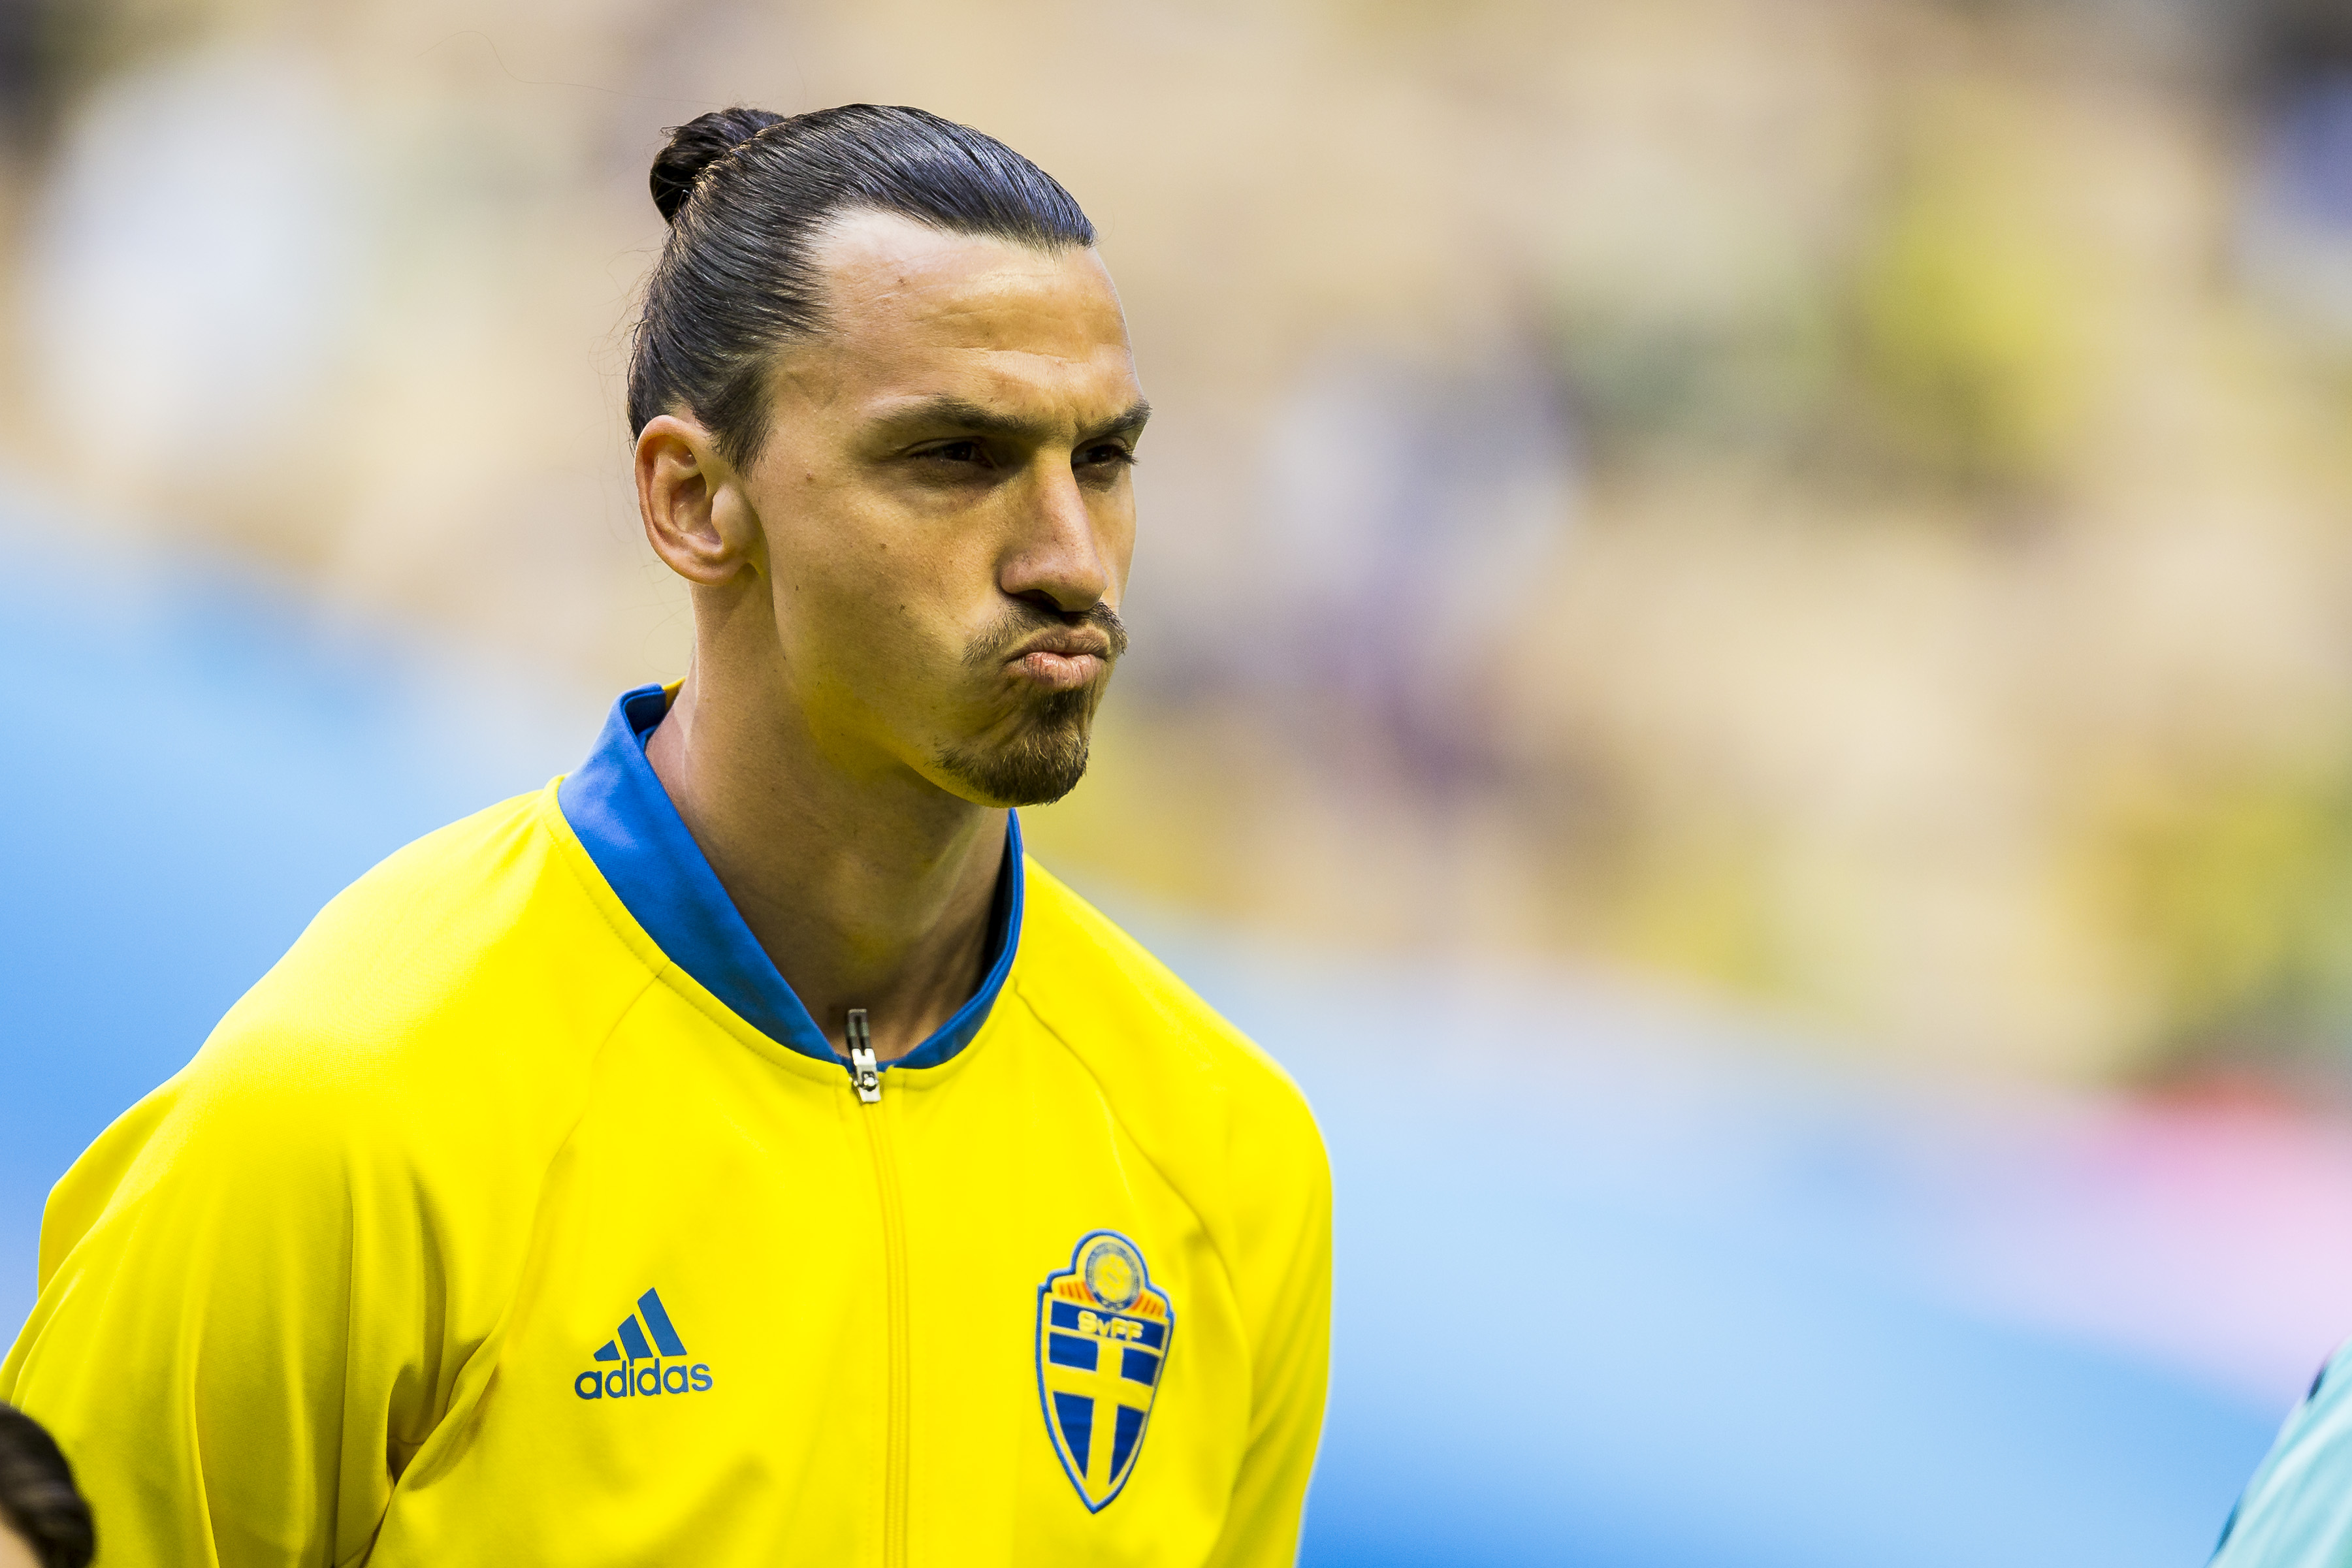 Has Zlatan Ibrahimovic just dropped the biggest hint yet that he is joining Manchester United?